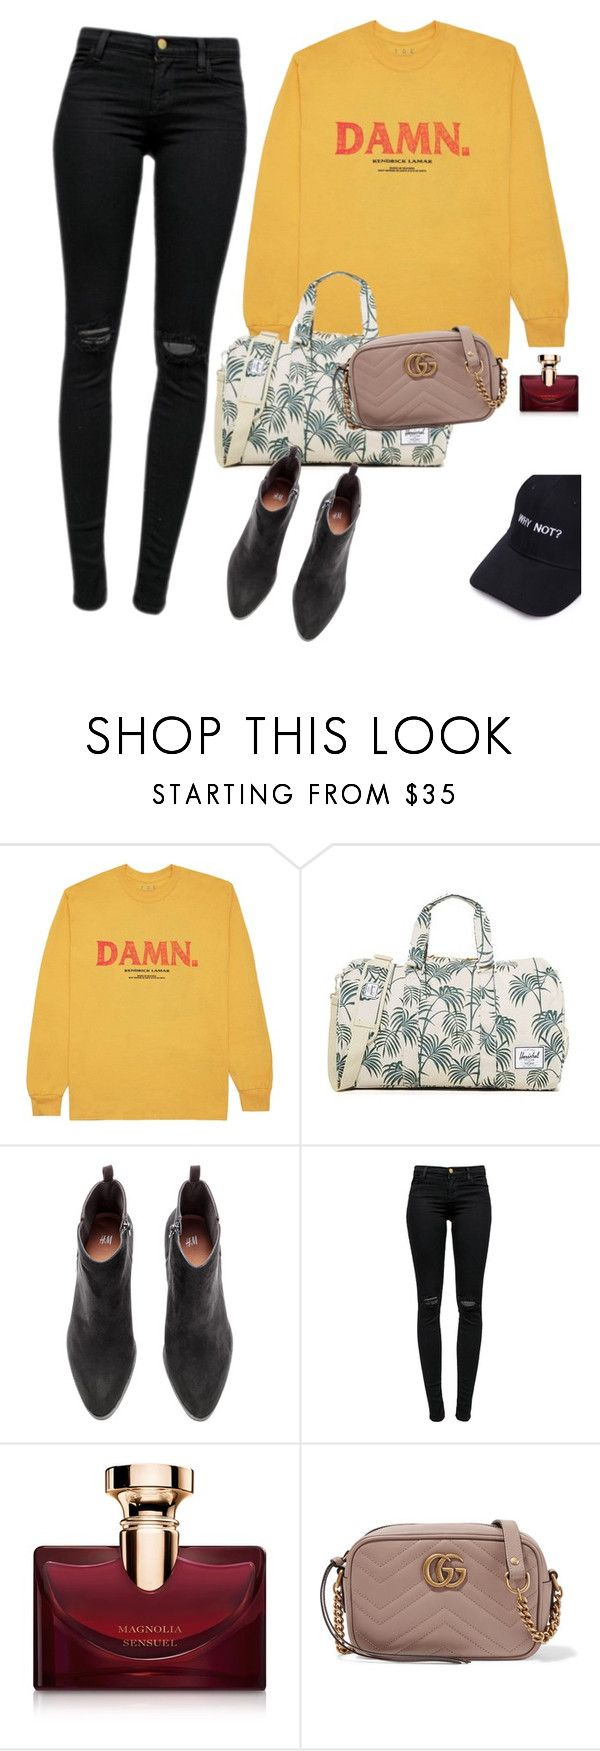 """Can't Afford"" by chelsofly on Polyvore featuring KENNY, Herschel Supply Co., J Brand, Bulgari and Gucci"